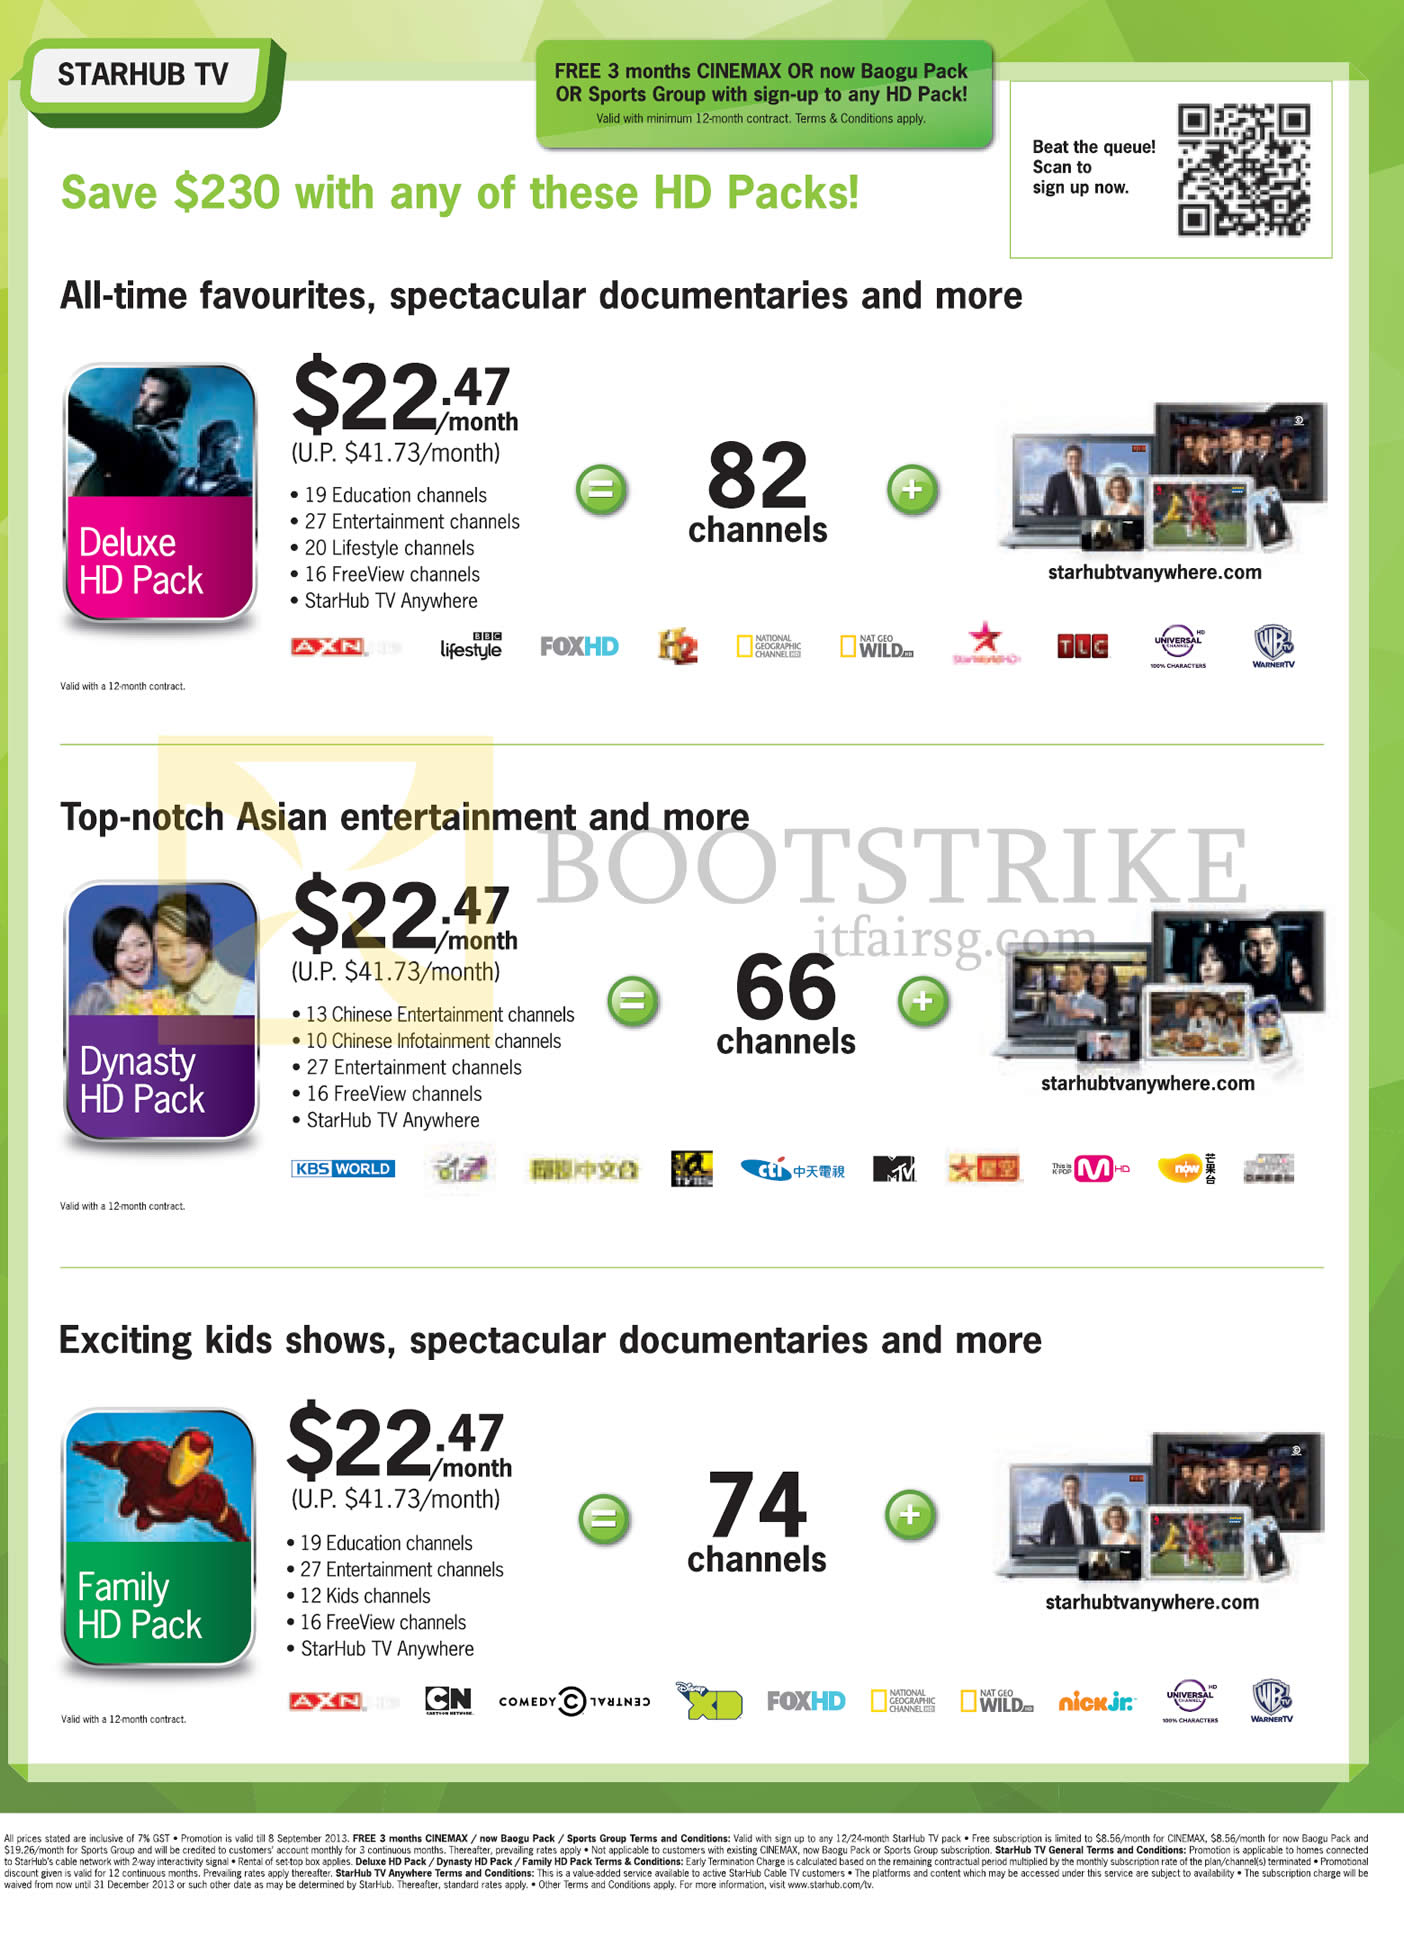 COMEX 2013 price list image brochure of Starhub TV Cable Deluxe HD Pack, Dynasty HD Pack, Family HD Pack